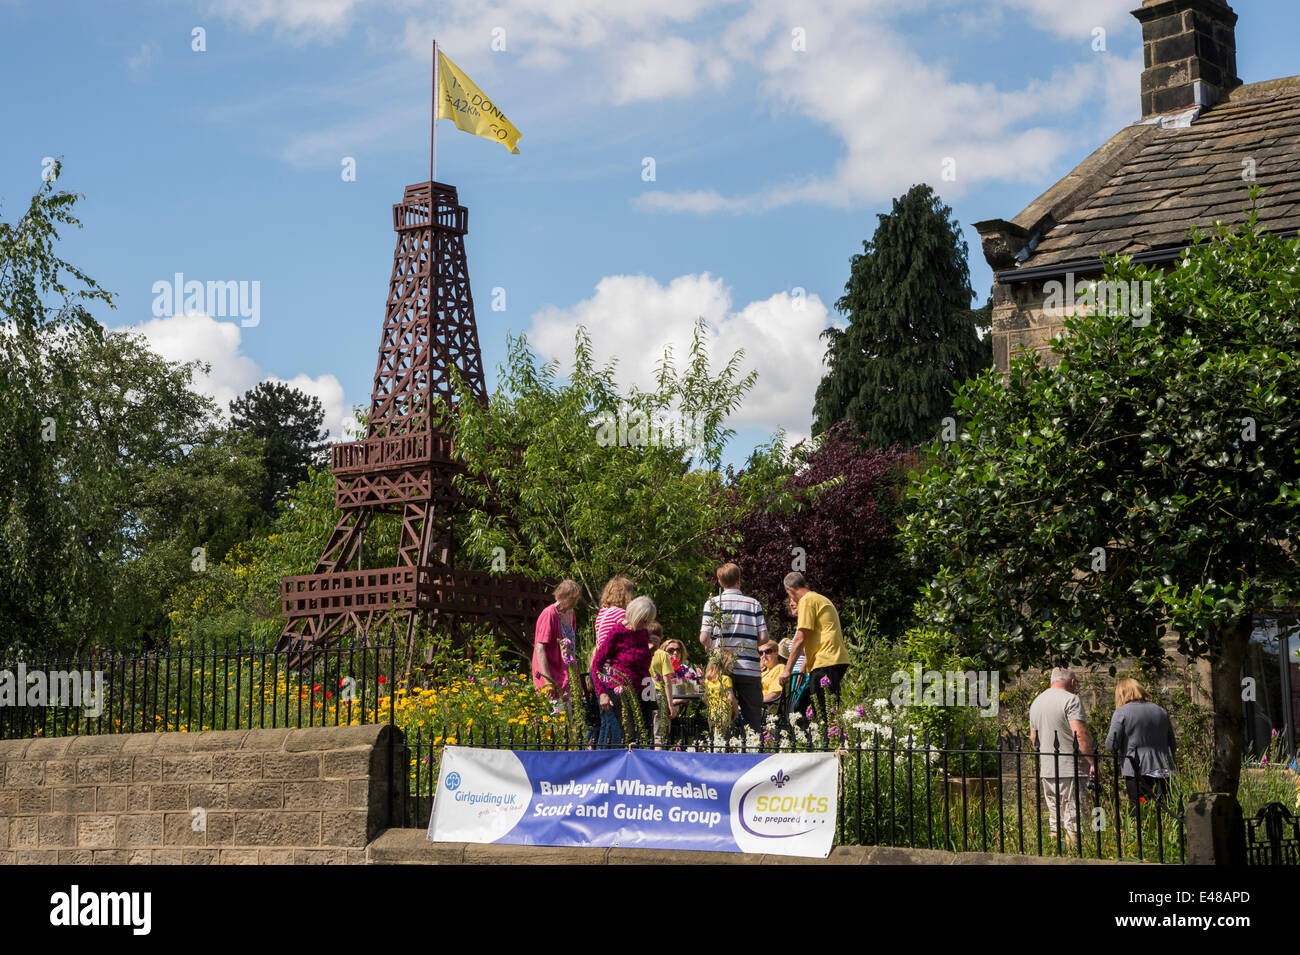 Impressive wooden Eiffel Tower model built to celebrate Le Tour in Yorkshire, is central feature of private garden, - Stock Image